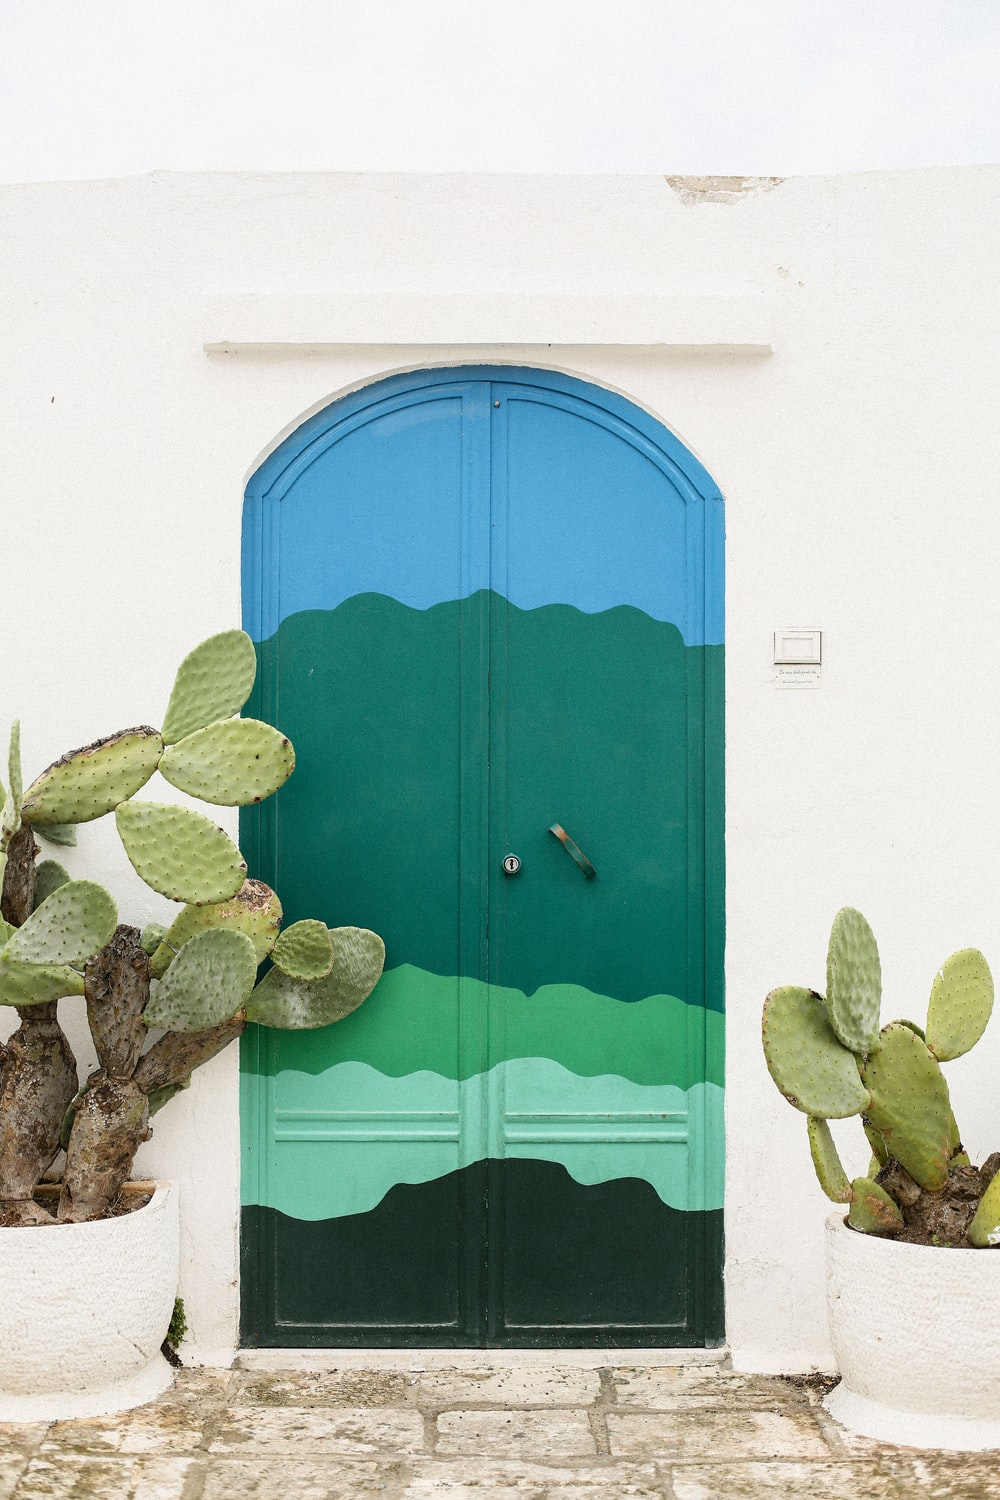 green and blue wooden door close-up photography